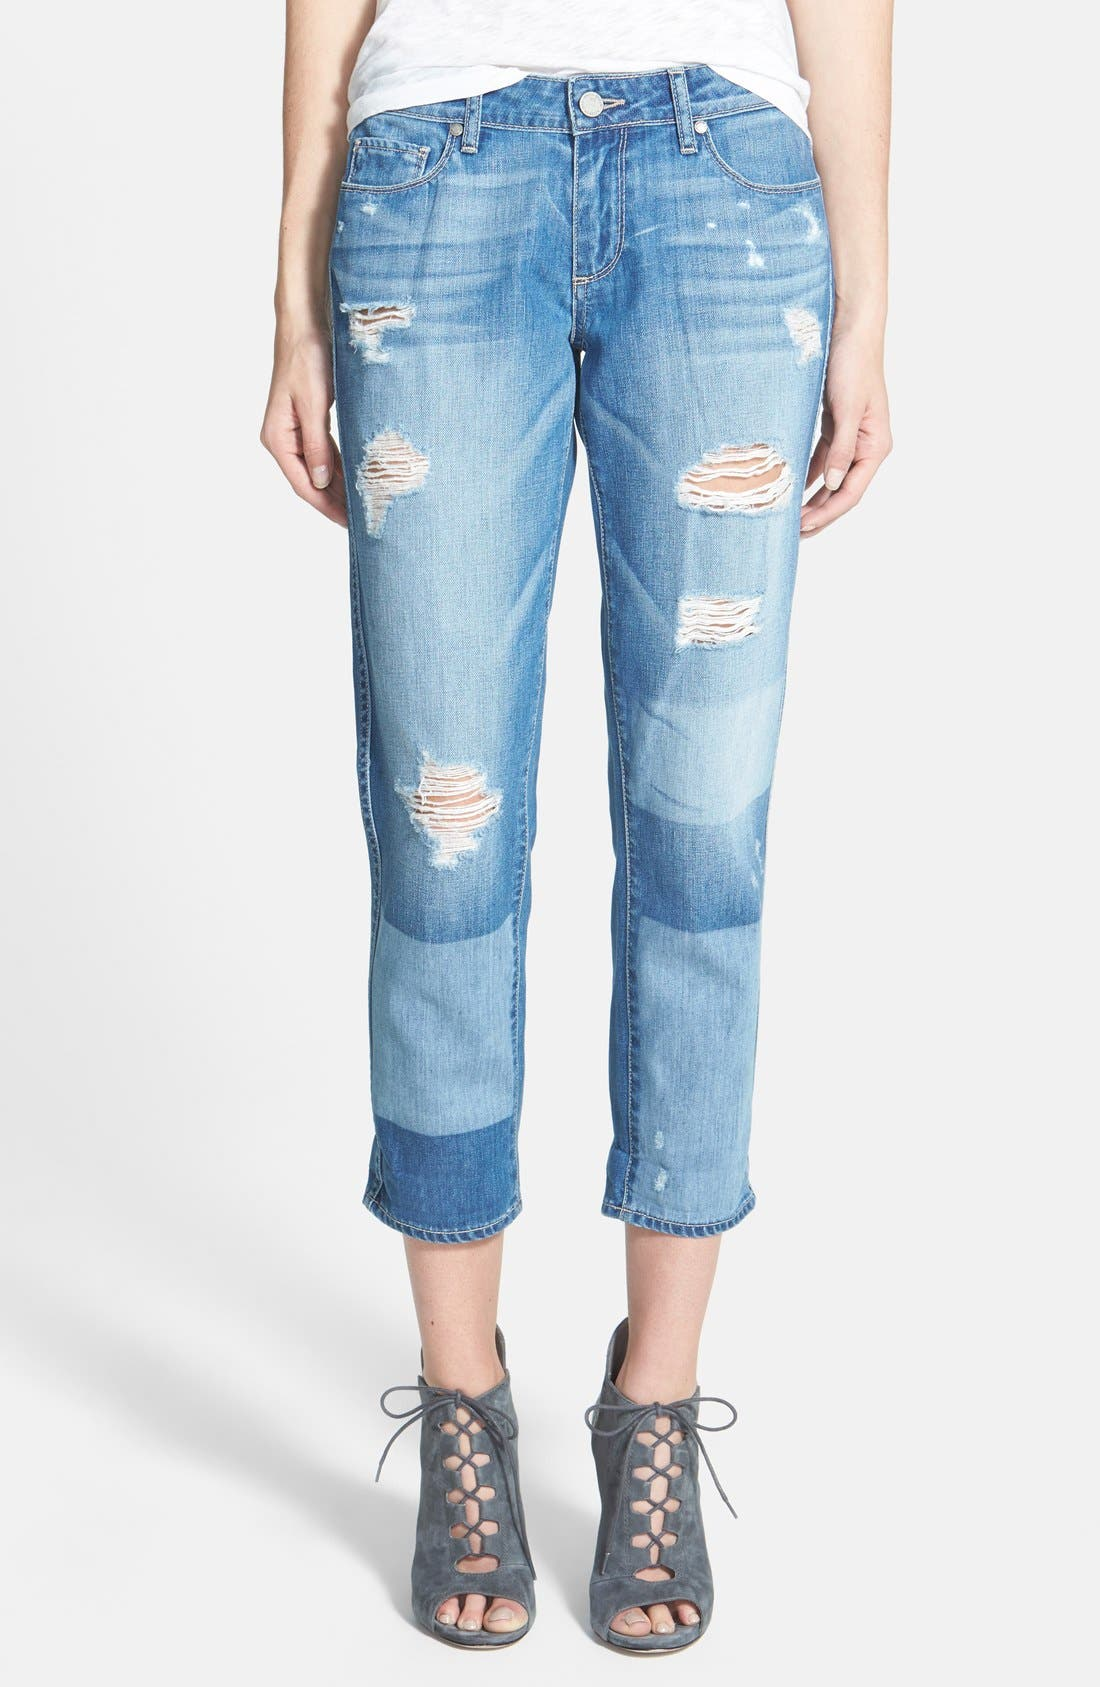 Alternate Image 1 Selected - Paige Denim 'Jimmy Jimmy' Crop Skinny Boyfriend Jeans (Indigo Ezra Destroyed)